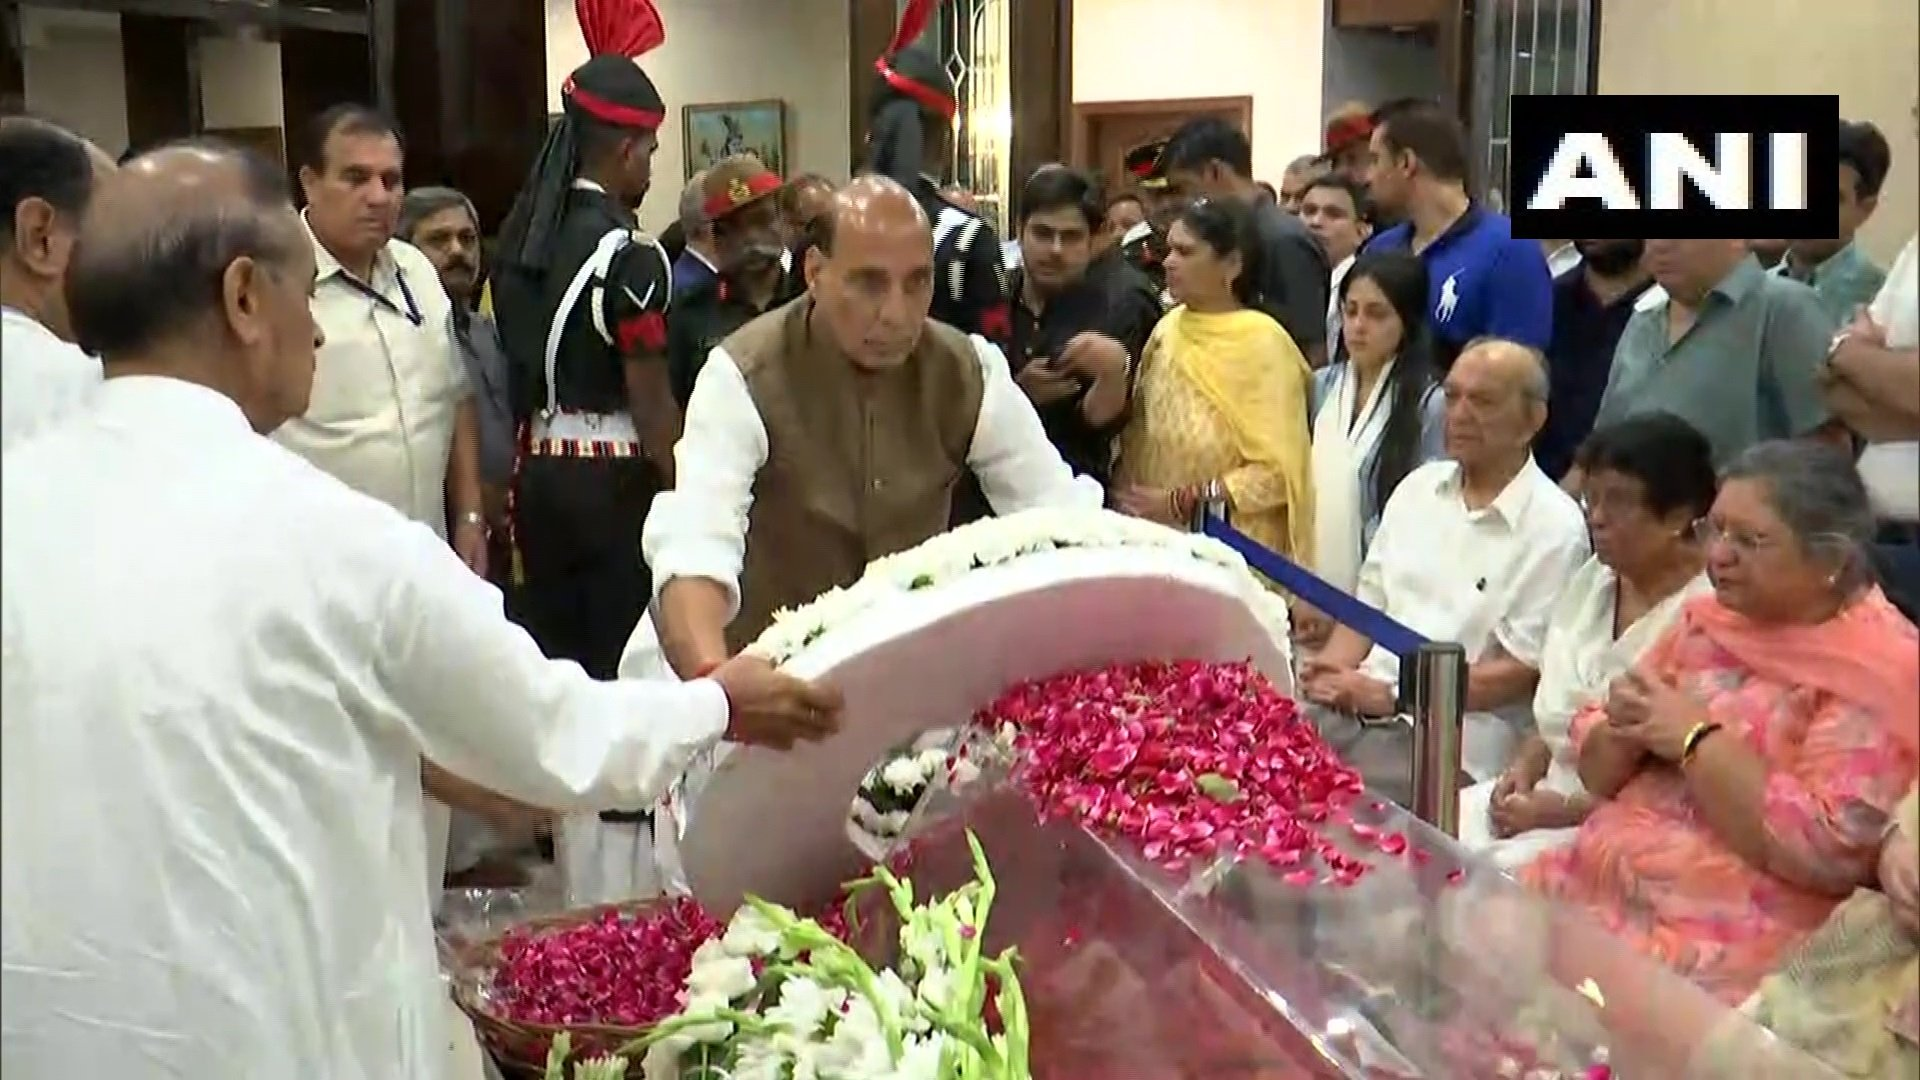 Defence Minister Rajnath Singh lays a wreath in tribute to former finance minister Arun Jaitley on behalf of himself and Prime Minister Narendra Modi (Image: ANI)